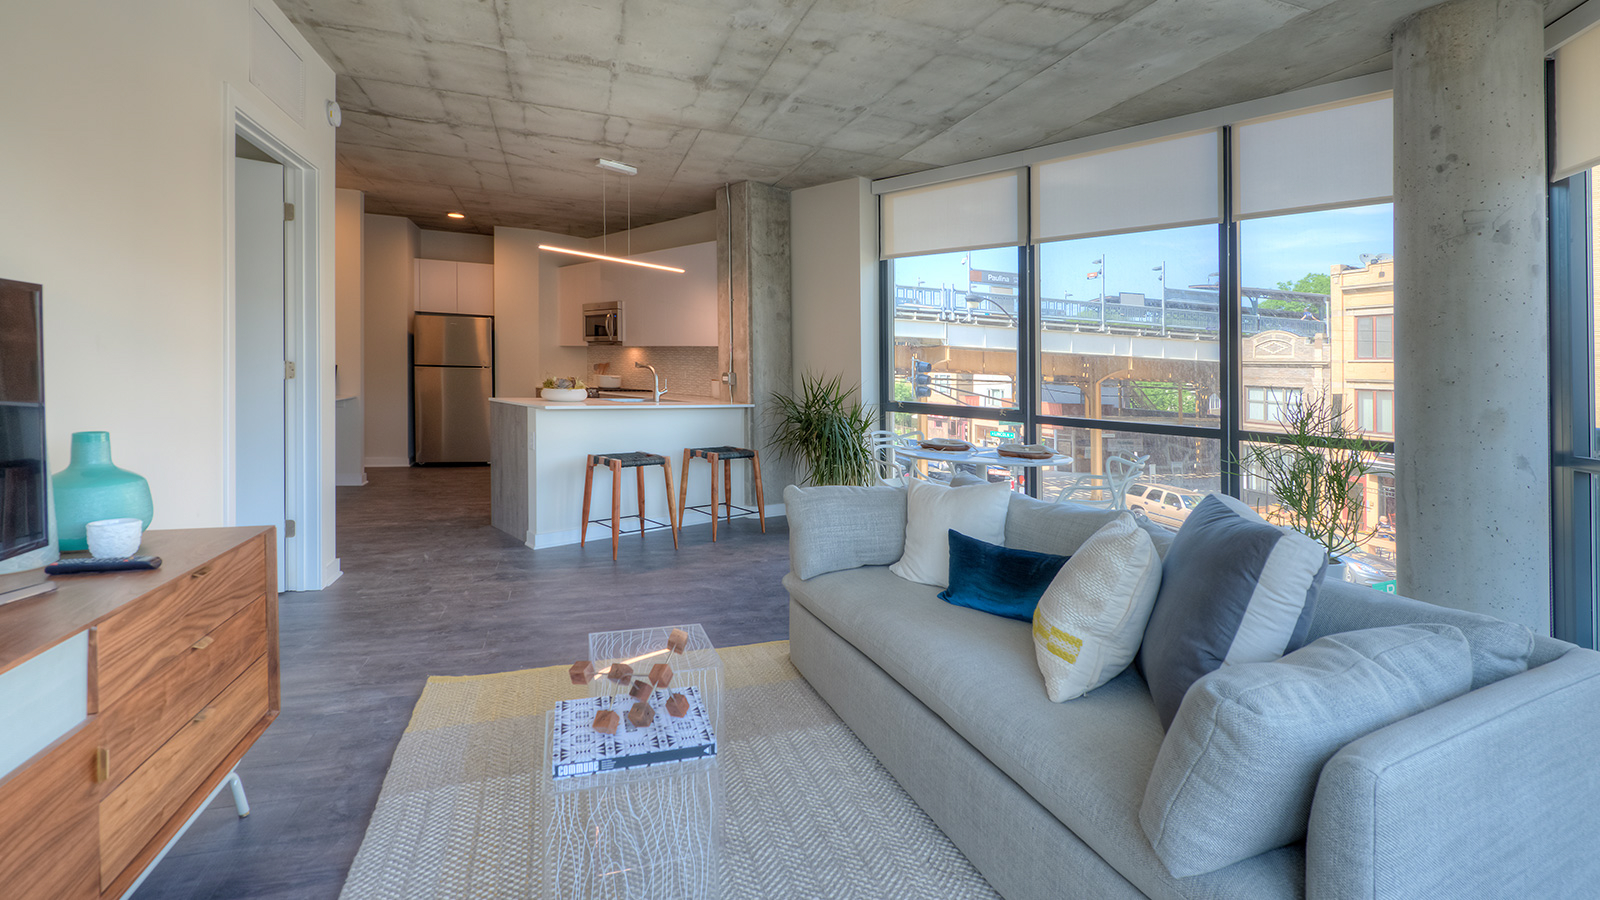 Looking for luxury apartments for rent near downtown Chicago's Lakeview neighborhood?